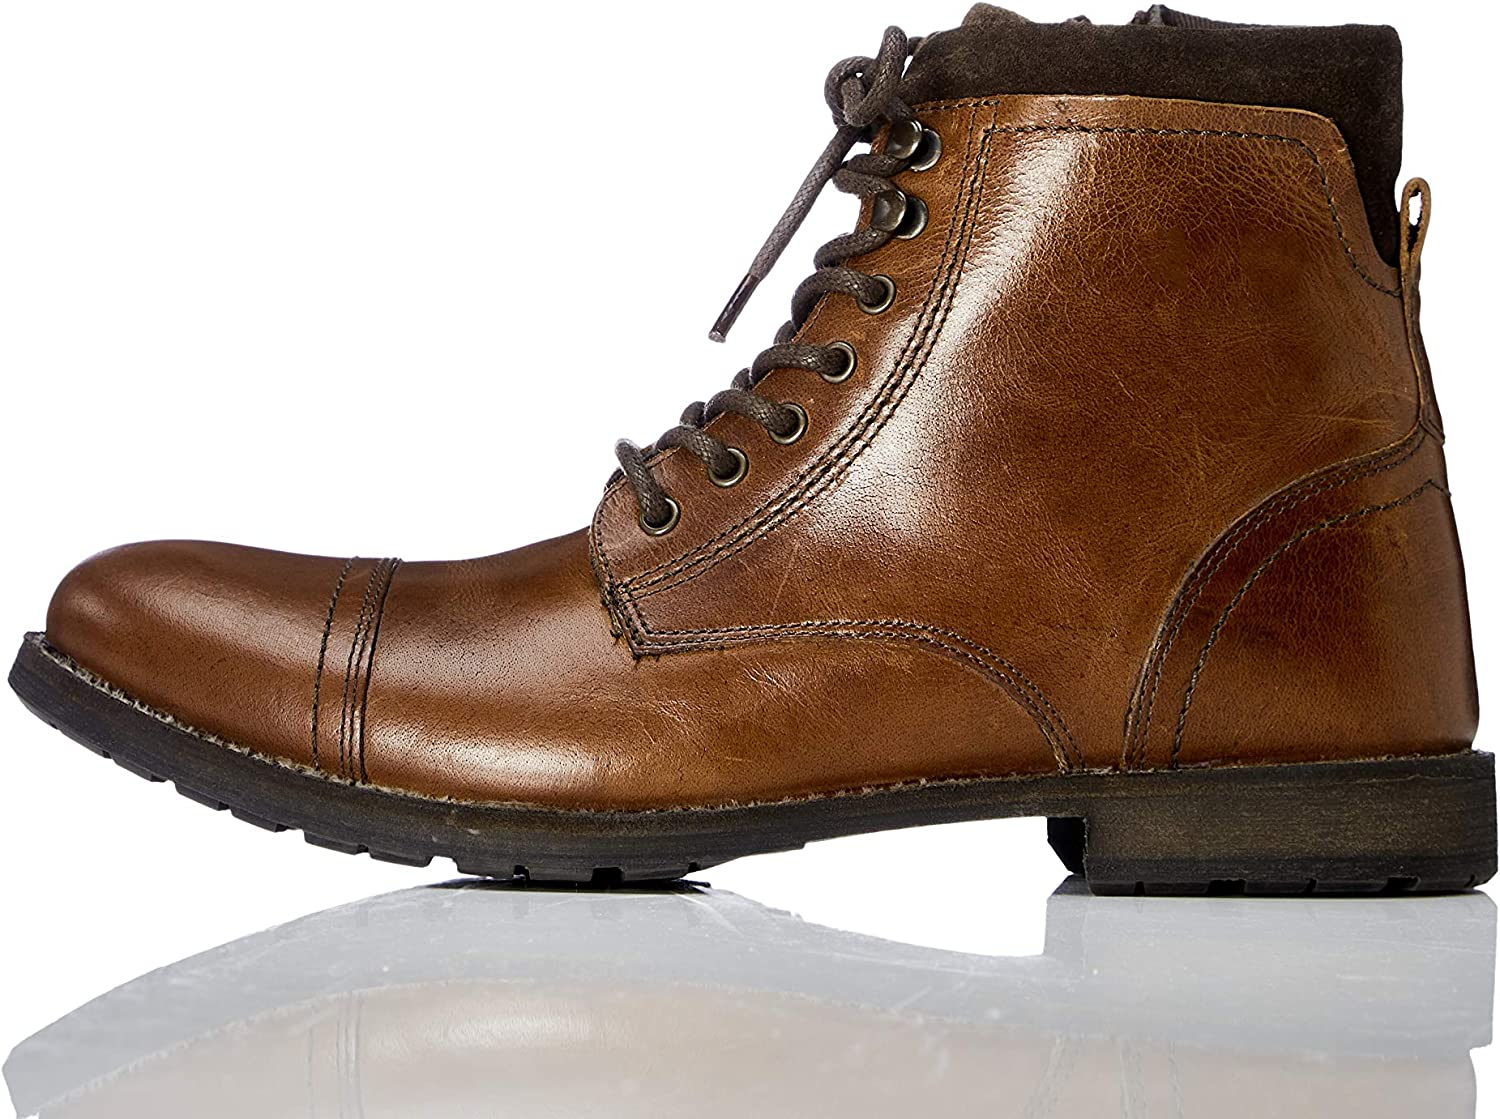 TALLA 40 EU. Marca Amazon - find. Max Zip Worker - Botas de motorista Hombre